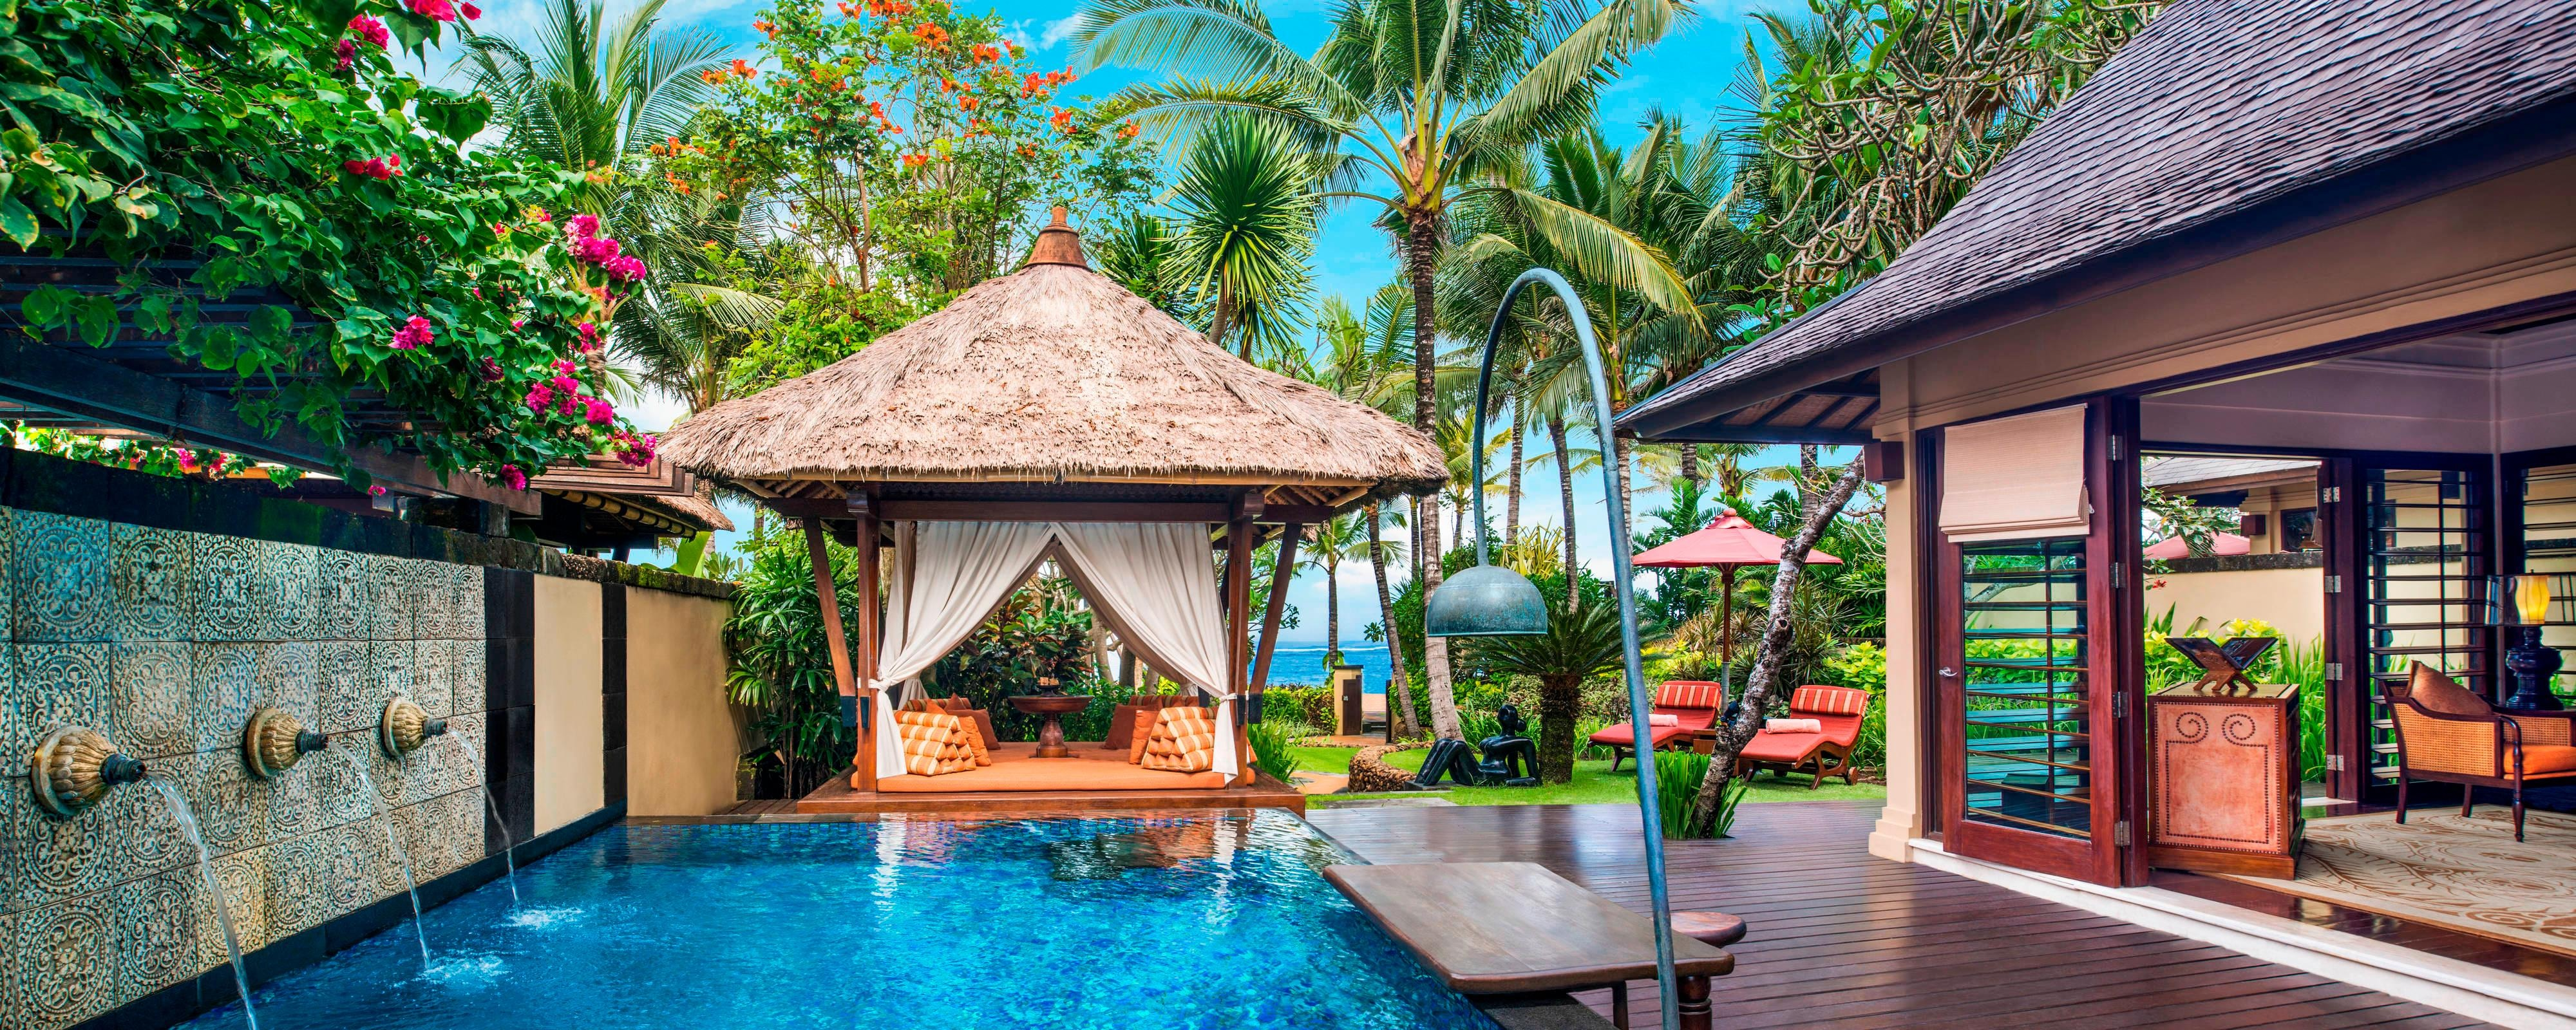 The Private Pool and Gazebo at The Strand Villa